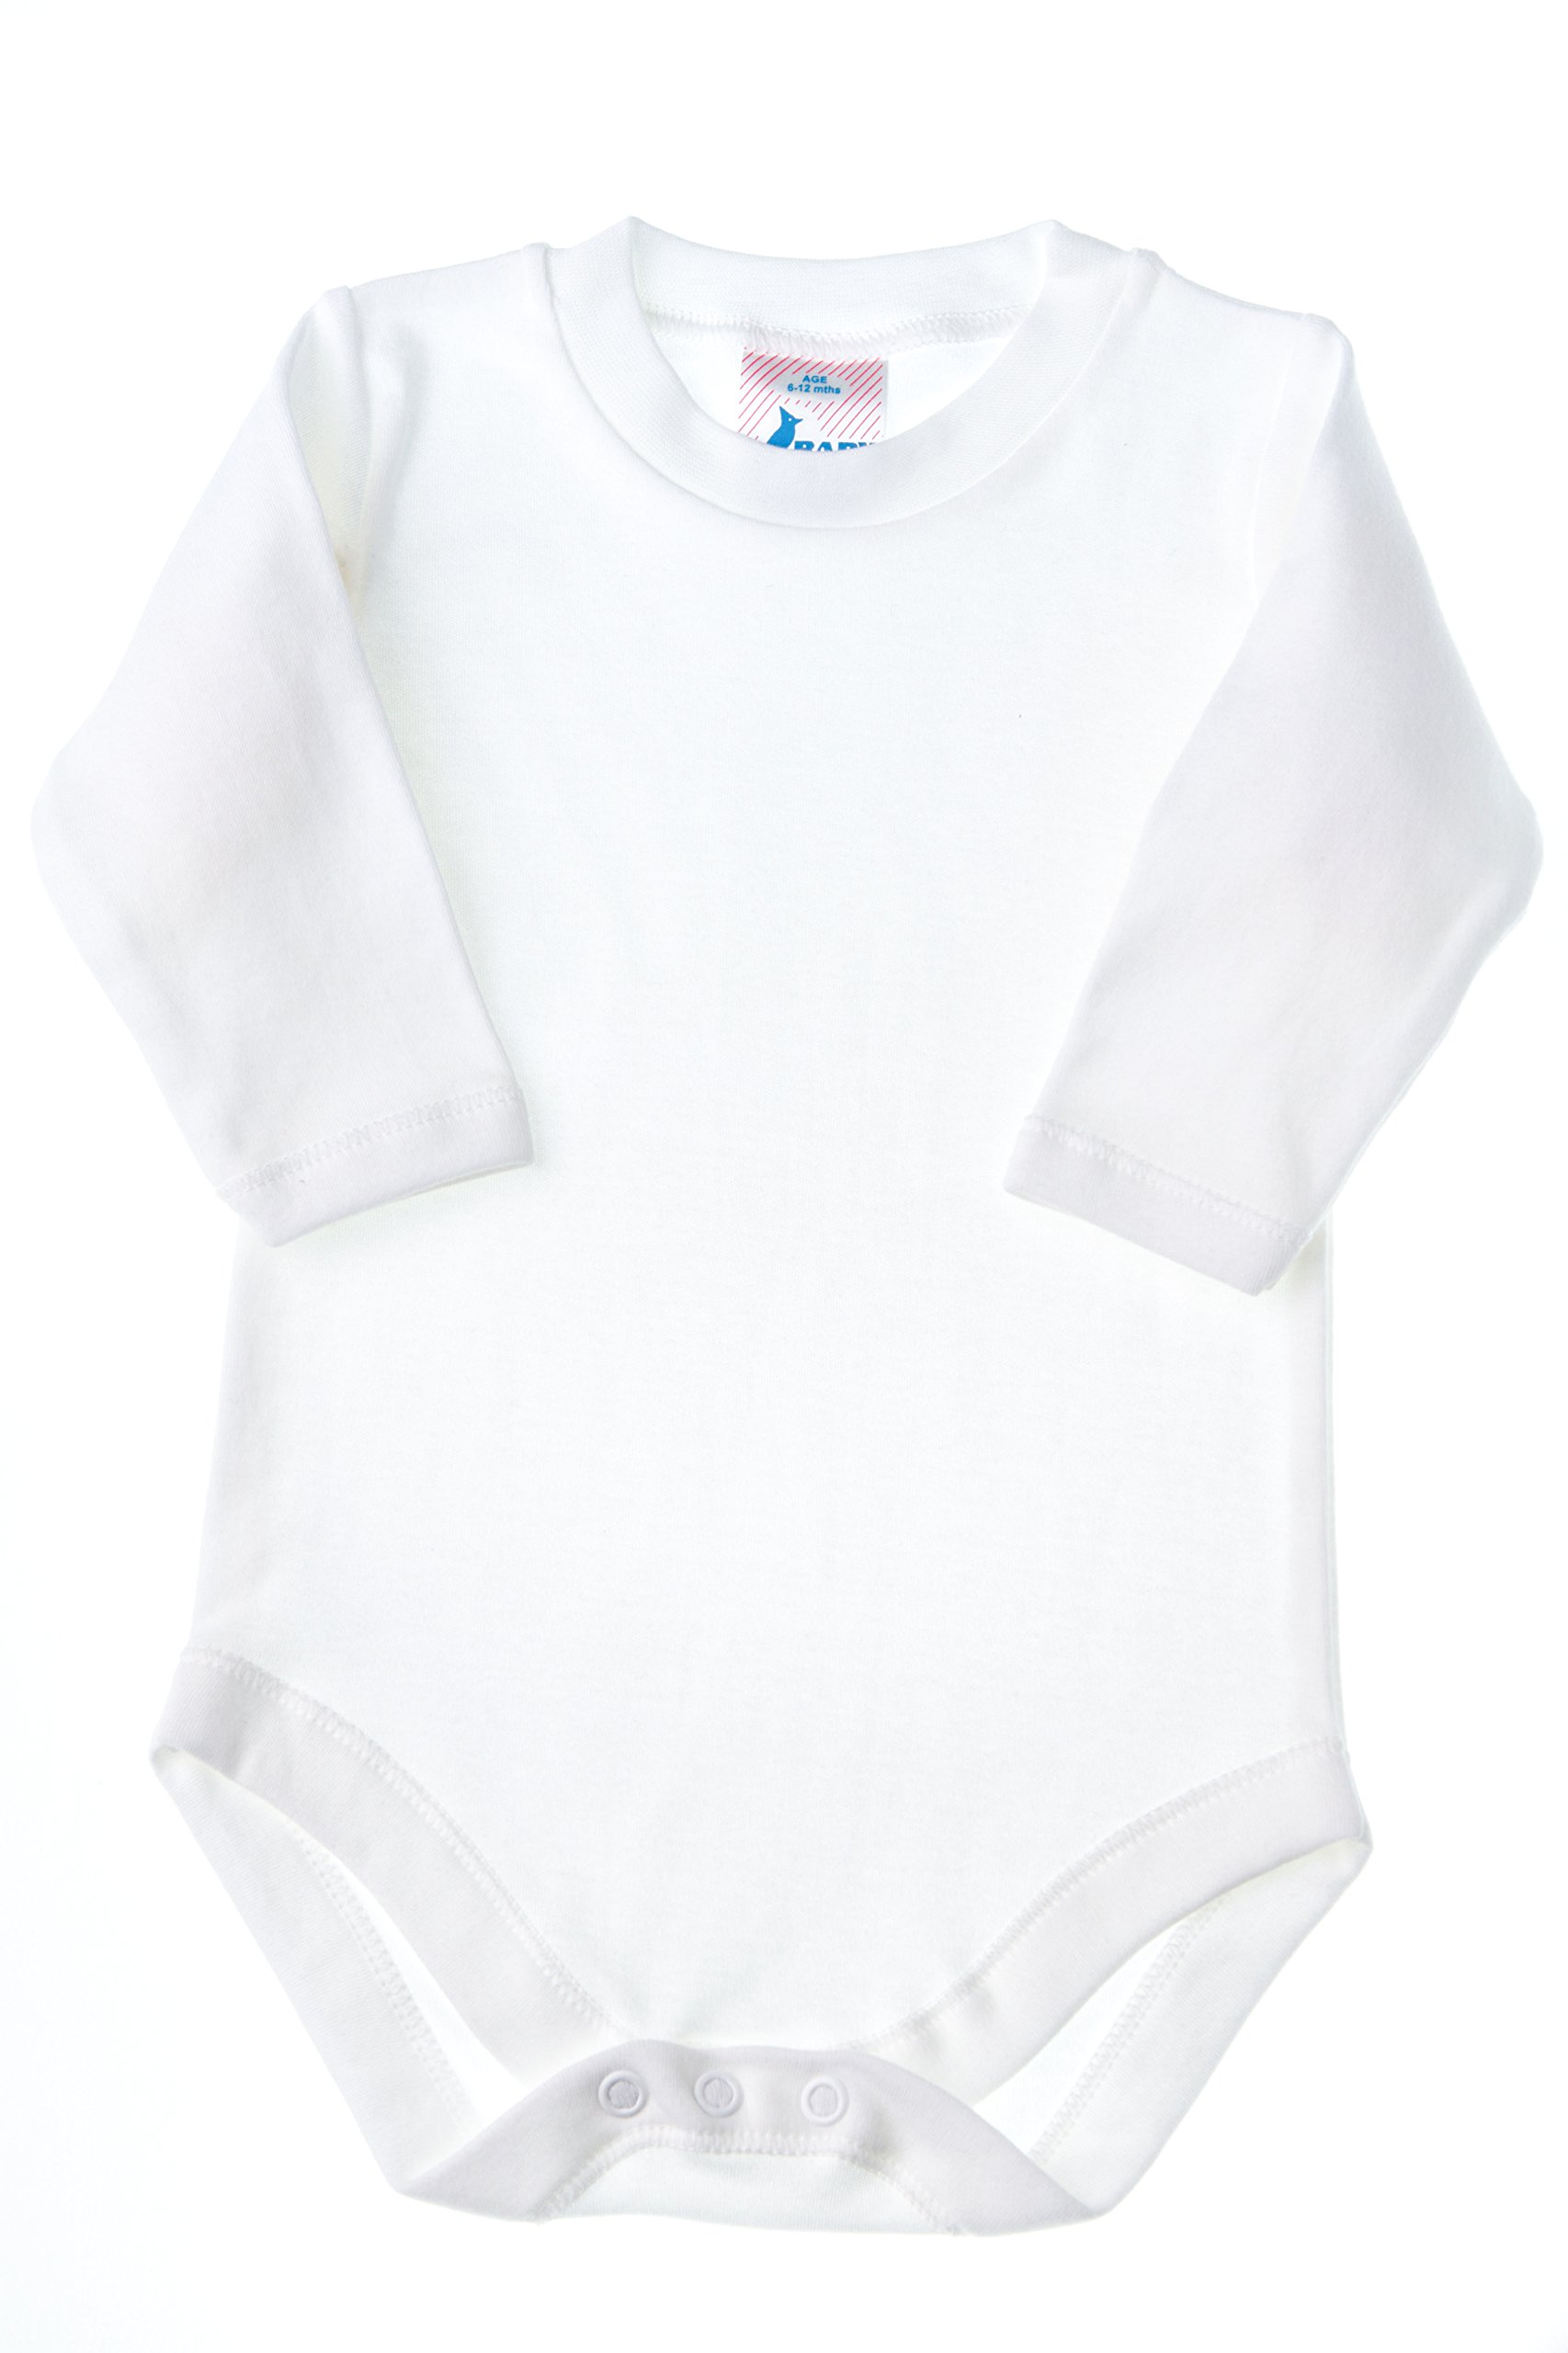 Baby Jay Soft Cotton Onesies, Long Sleeve Unisex Bodysuit, WSLR 3-6 2-Pack by Baby Jay (Image #2)